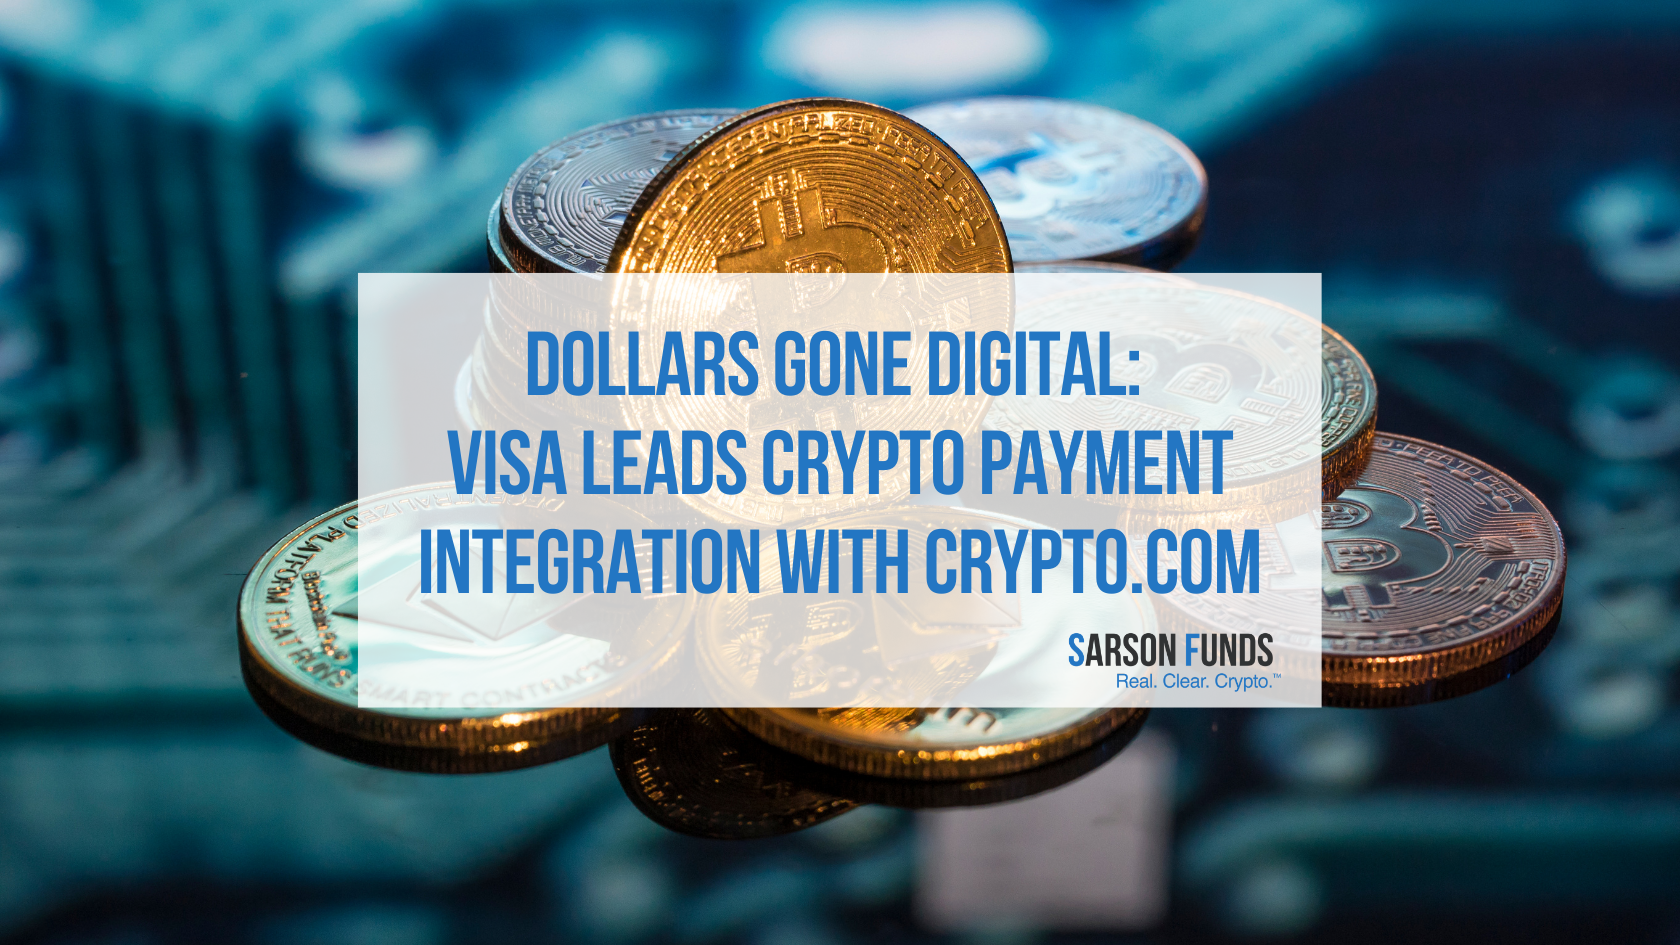 Visa allows crypto payments for Crypto.com